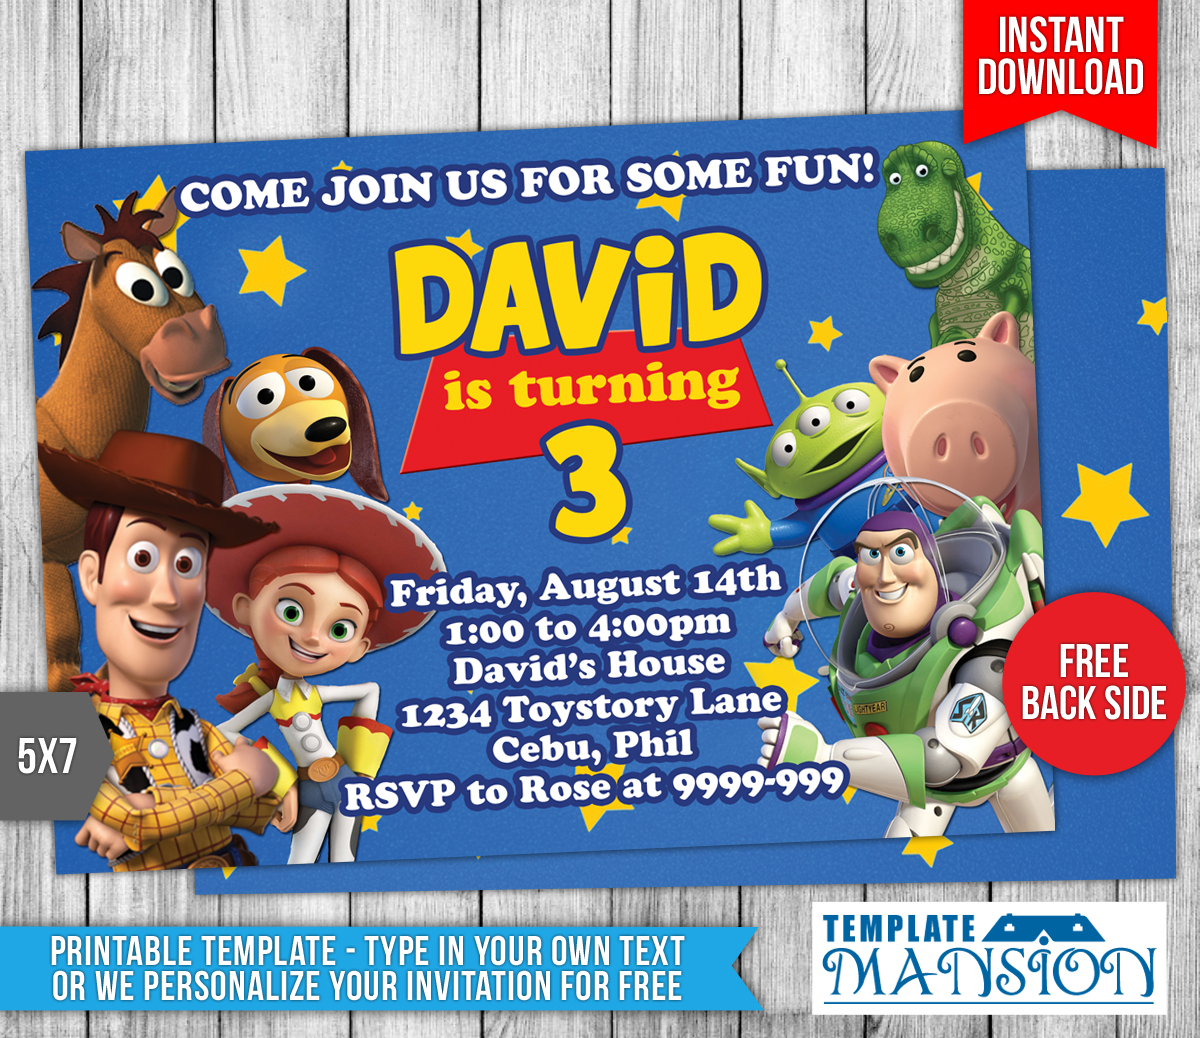 Toy story birthday invitation 1 by templatemansion on for Toy story invites templates free